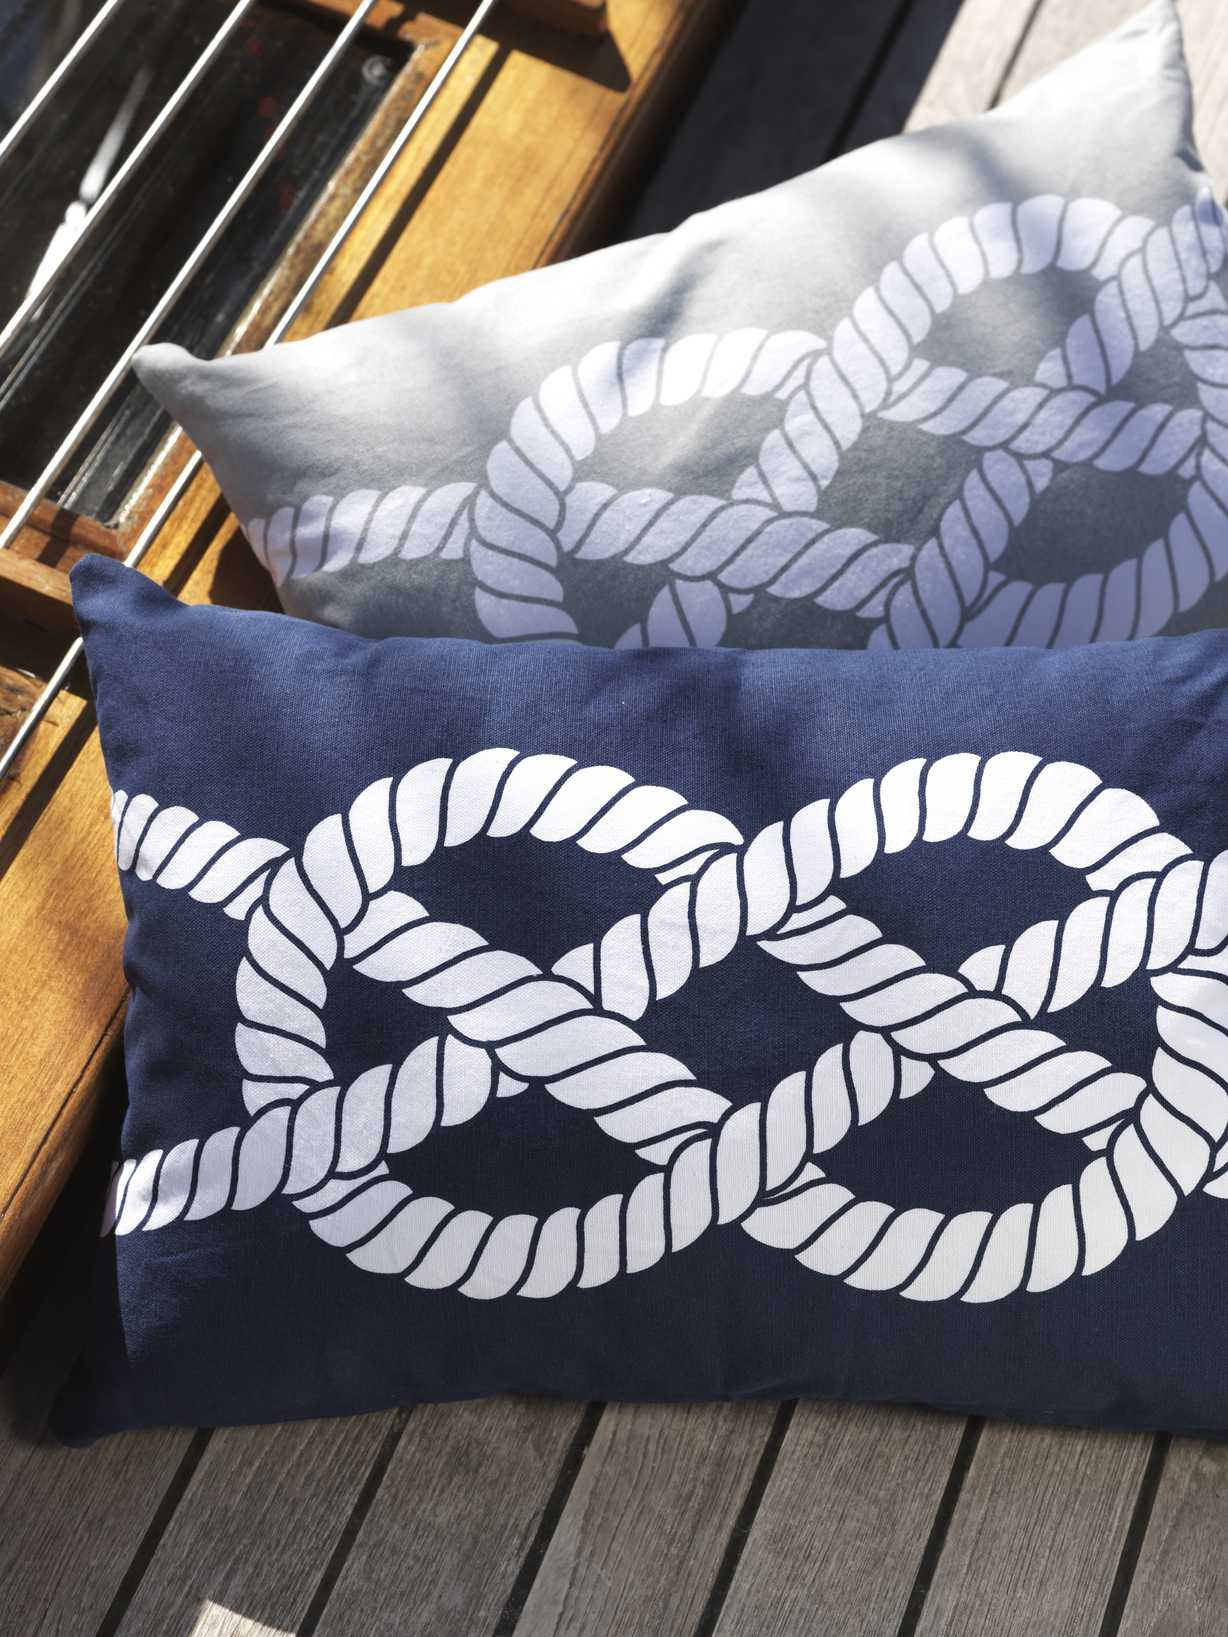 Nordic House Nautical Cushions - Knots